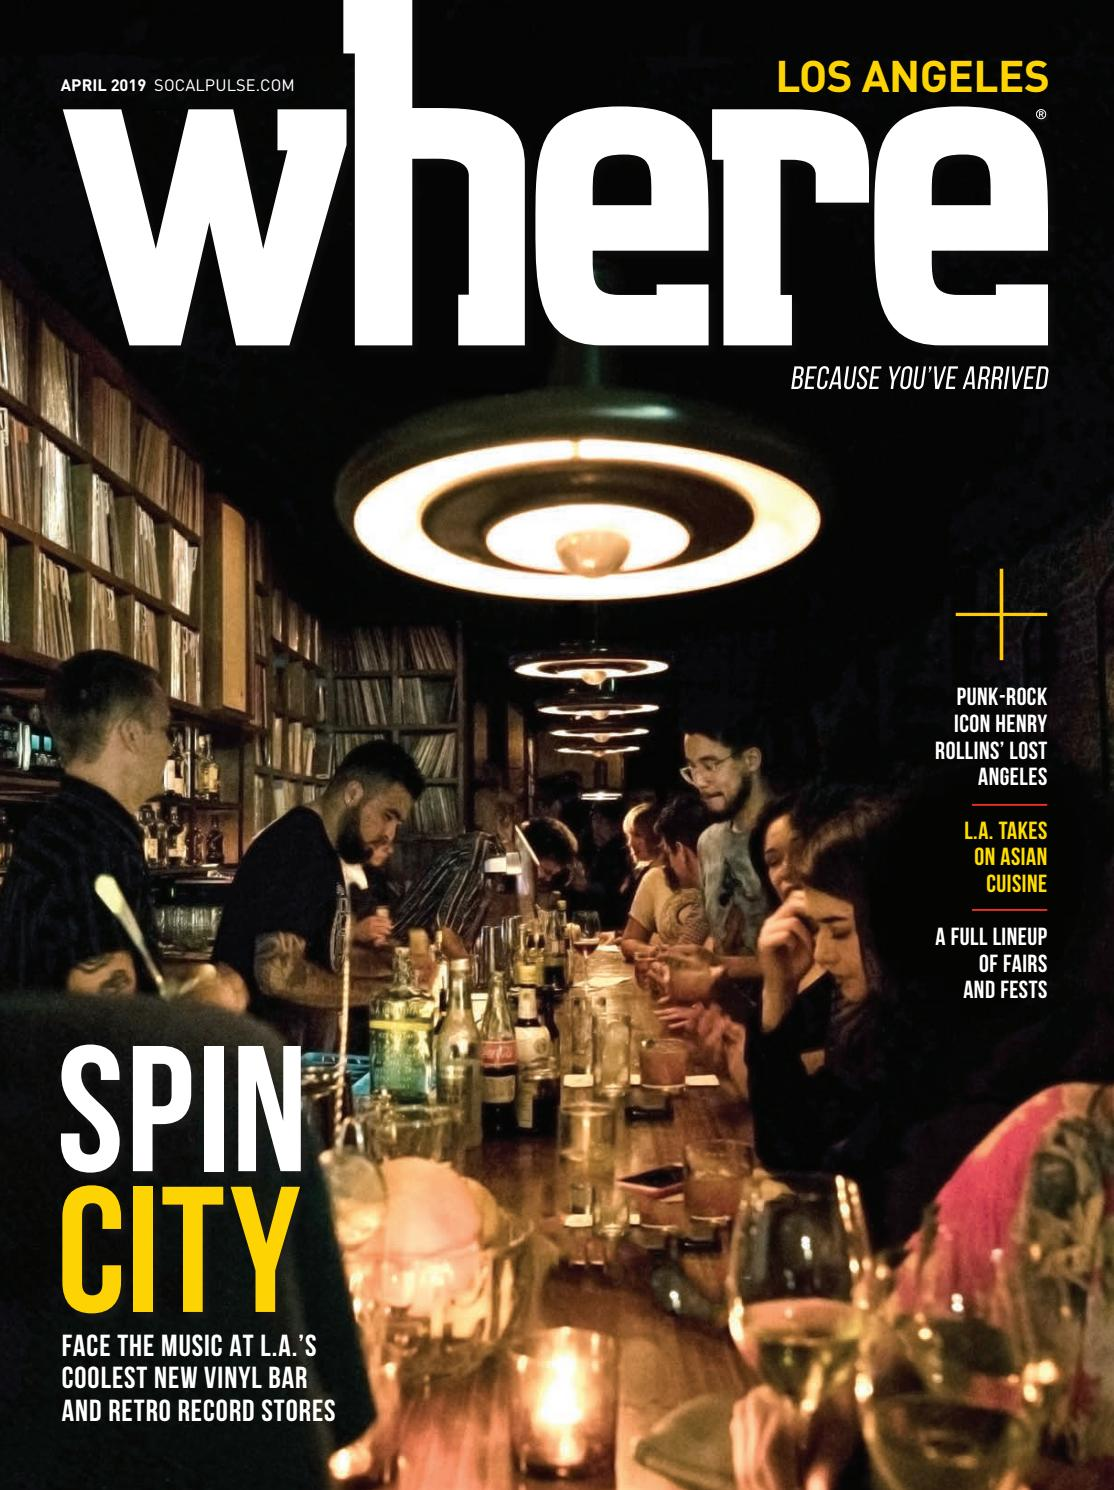 6d7c22e355b0 Where Magazine Los Angeles April 2019 by SoCalMedia - issuu